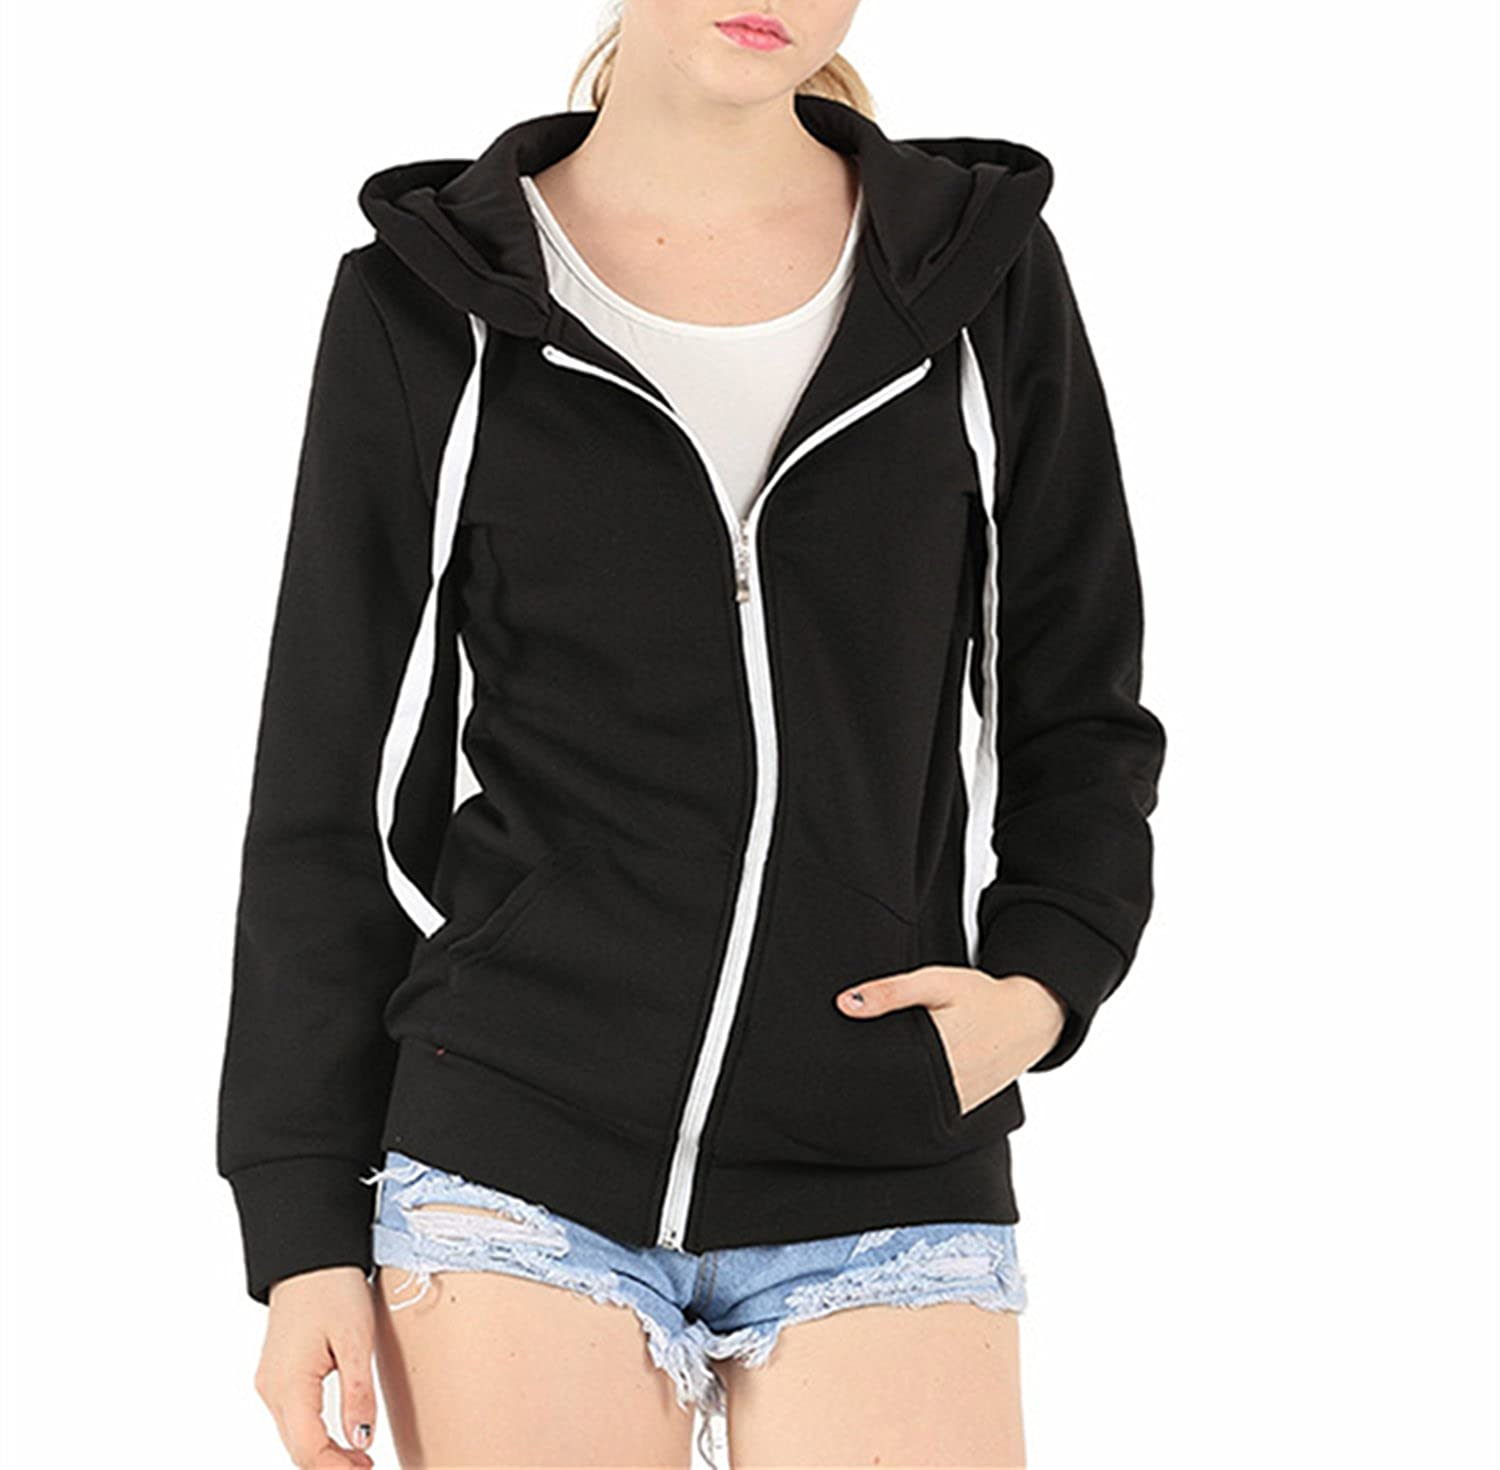 MBJ Womens Active Soft Zip Up Fleece Hoodie Sweater Jacket at ...